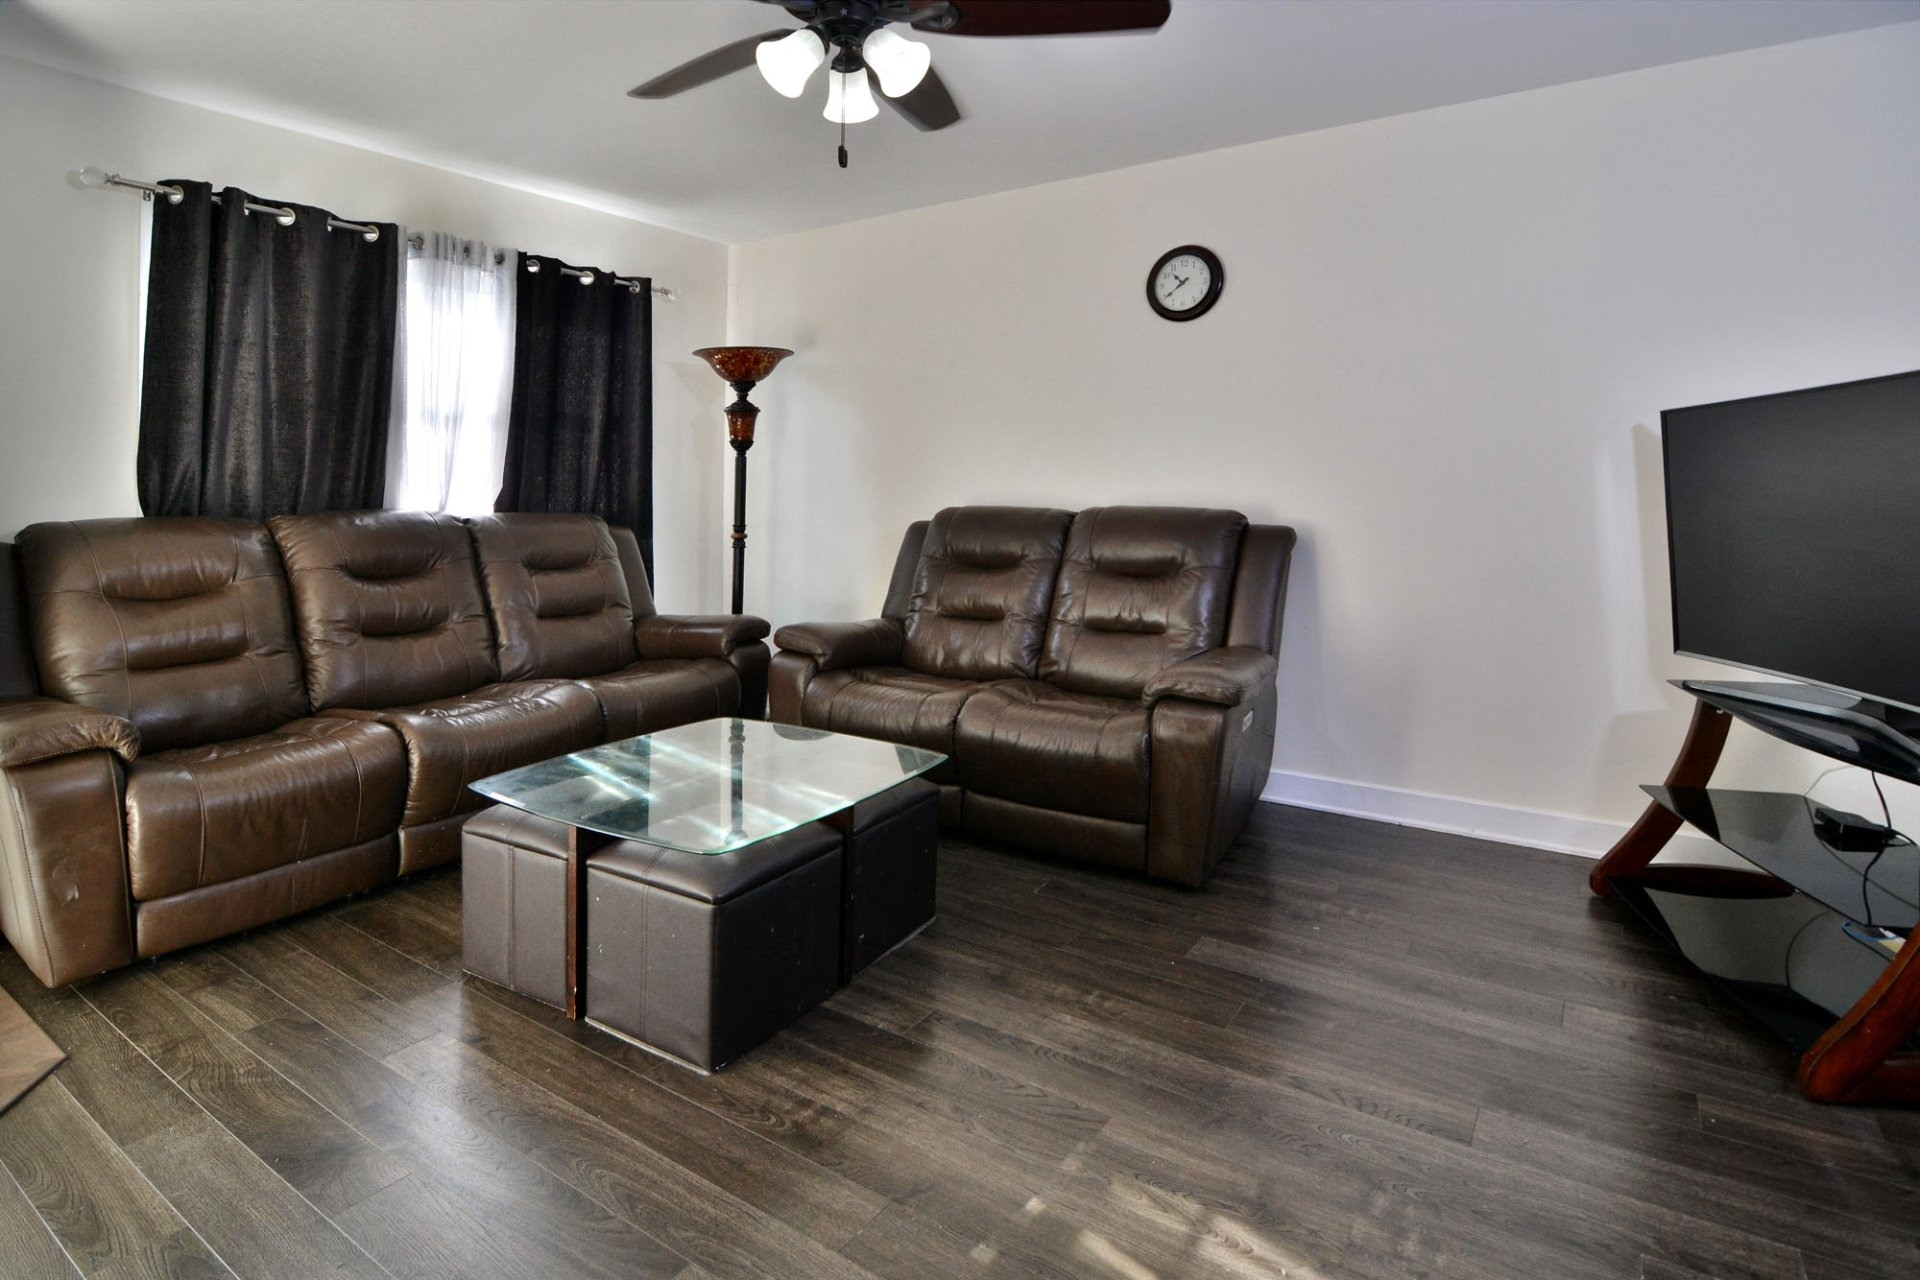 image 2 - House For sale Vaudreuil-Dorion - 7 rooms